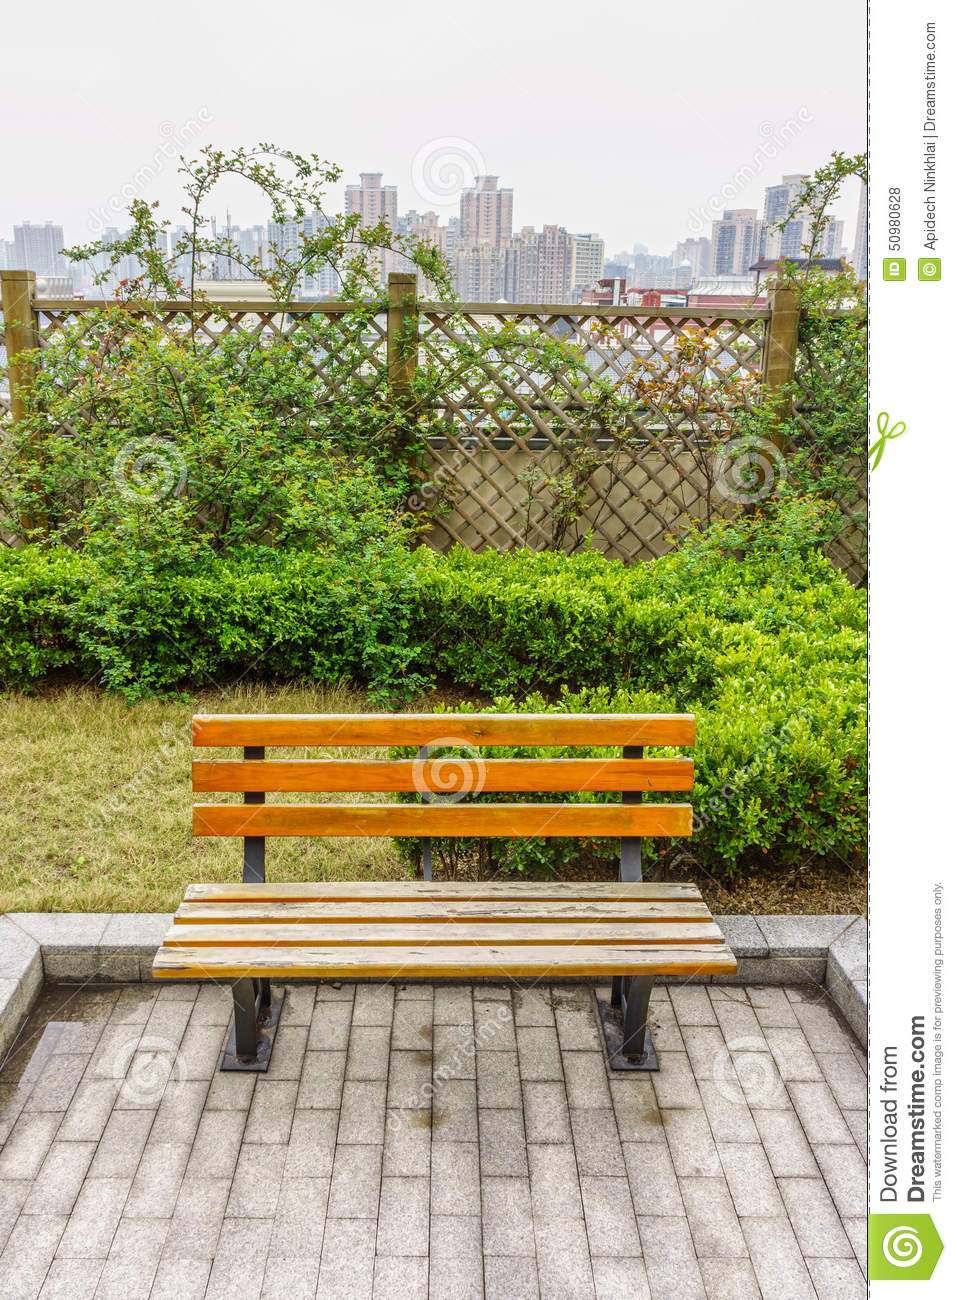 un banc en bois dans un jardin sur la terrasse de toit photo stock image 50980628. Black Bedroom Furniture Sets. Home Design Ideas